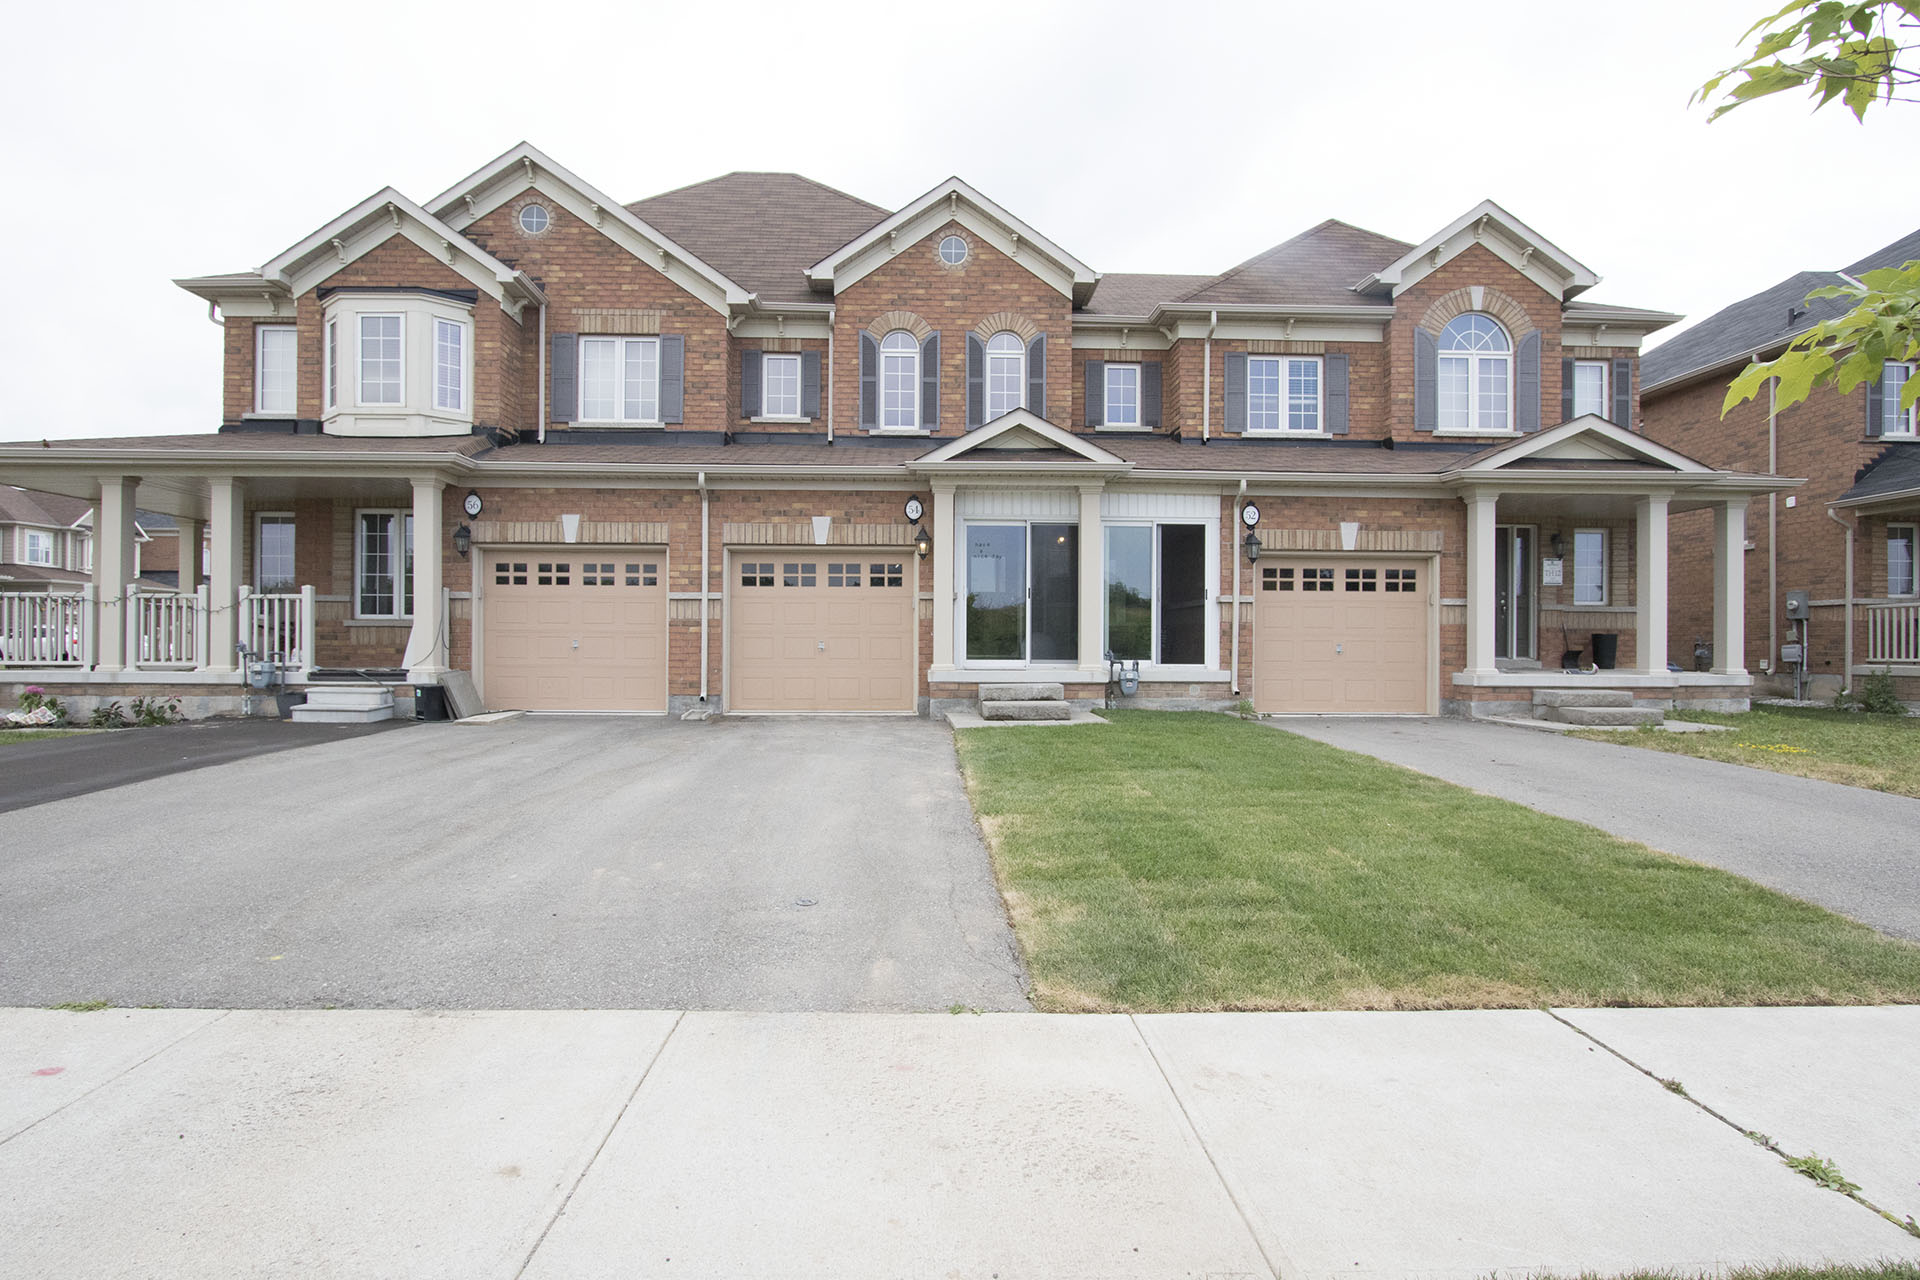 54 Juneberry Road, Thorold - For Sale $379,000 | SOLD for 98% of asking.